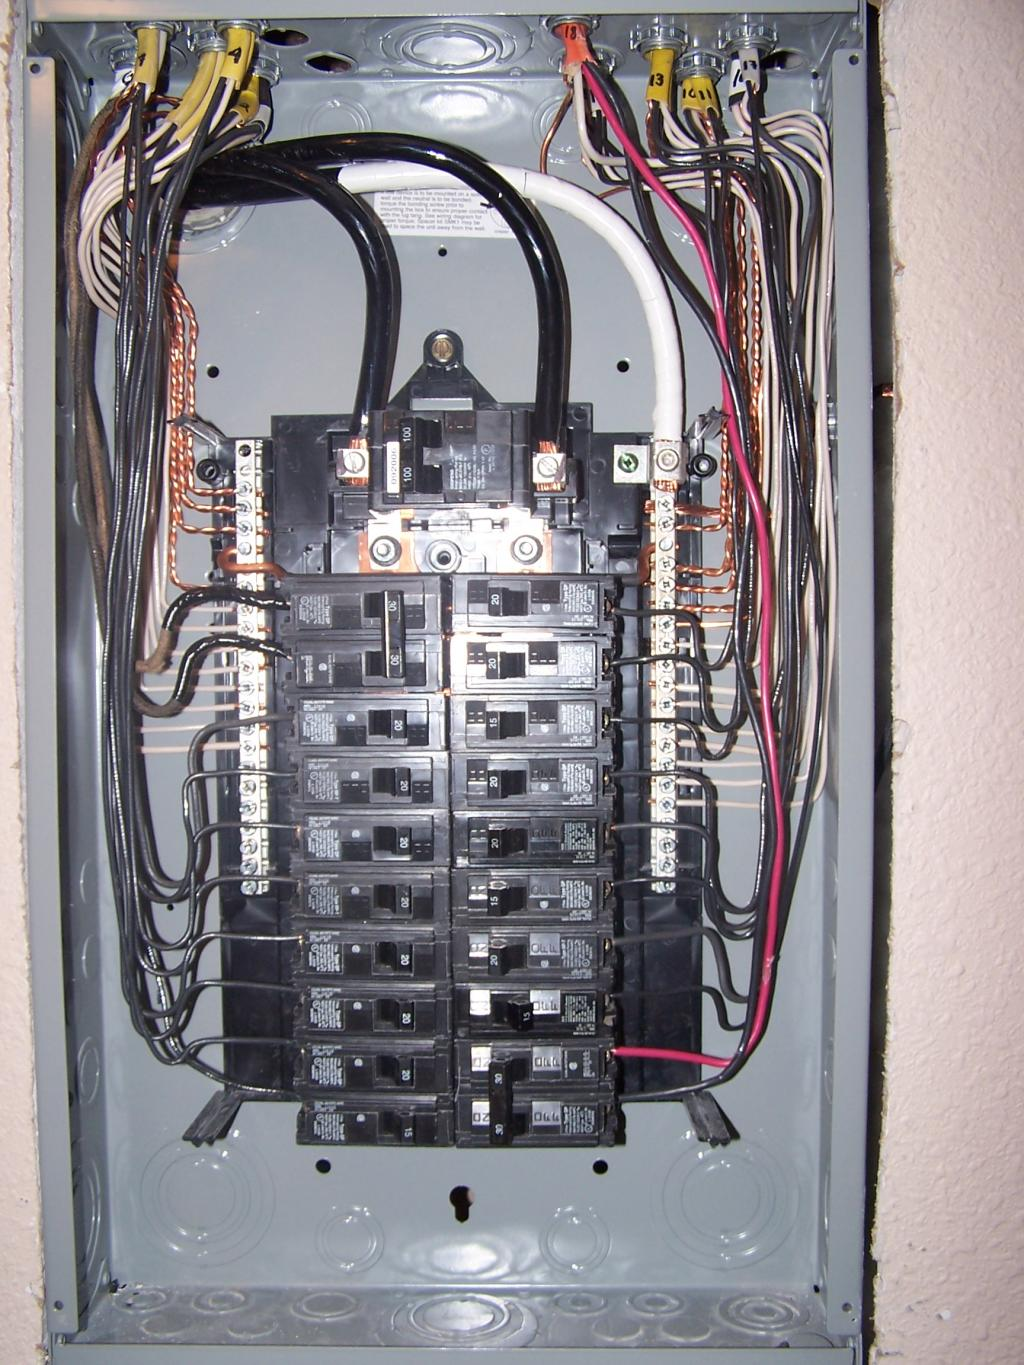 A Main Electrical Panel Inside Wiring Diagram Master Blogs 2003 Ktm 125sx Household Library Rh 50 Skriptoase De Cans Plc Control Panels